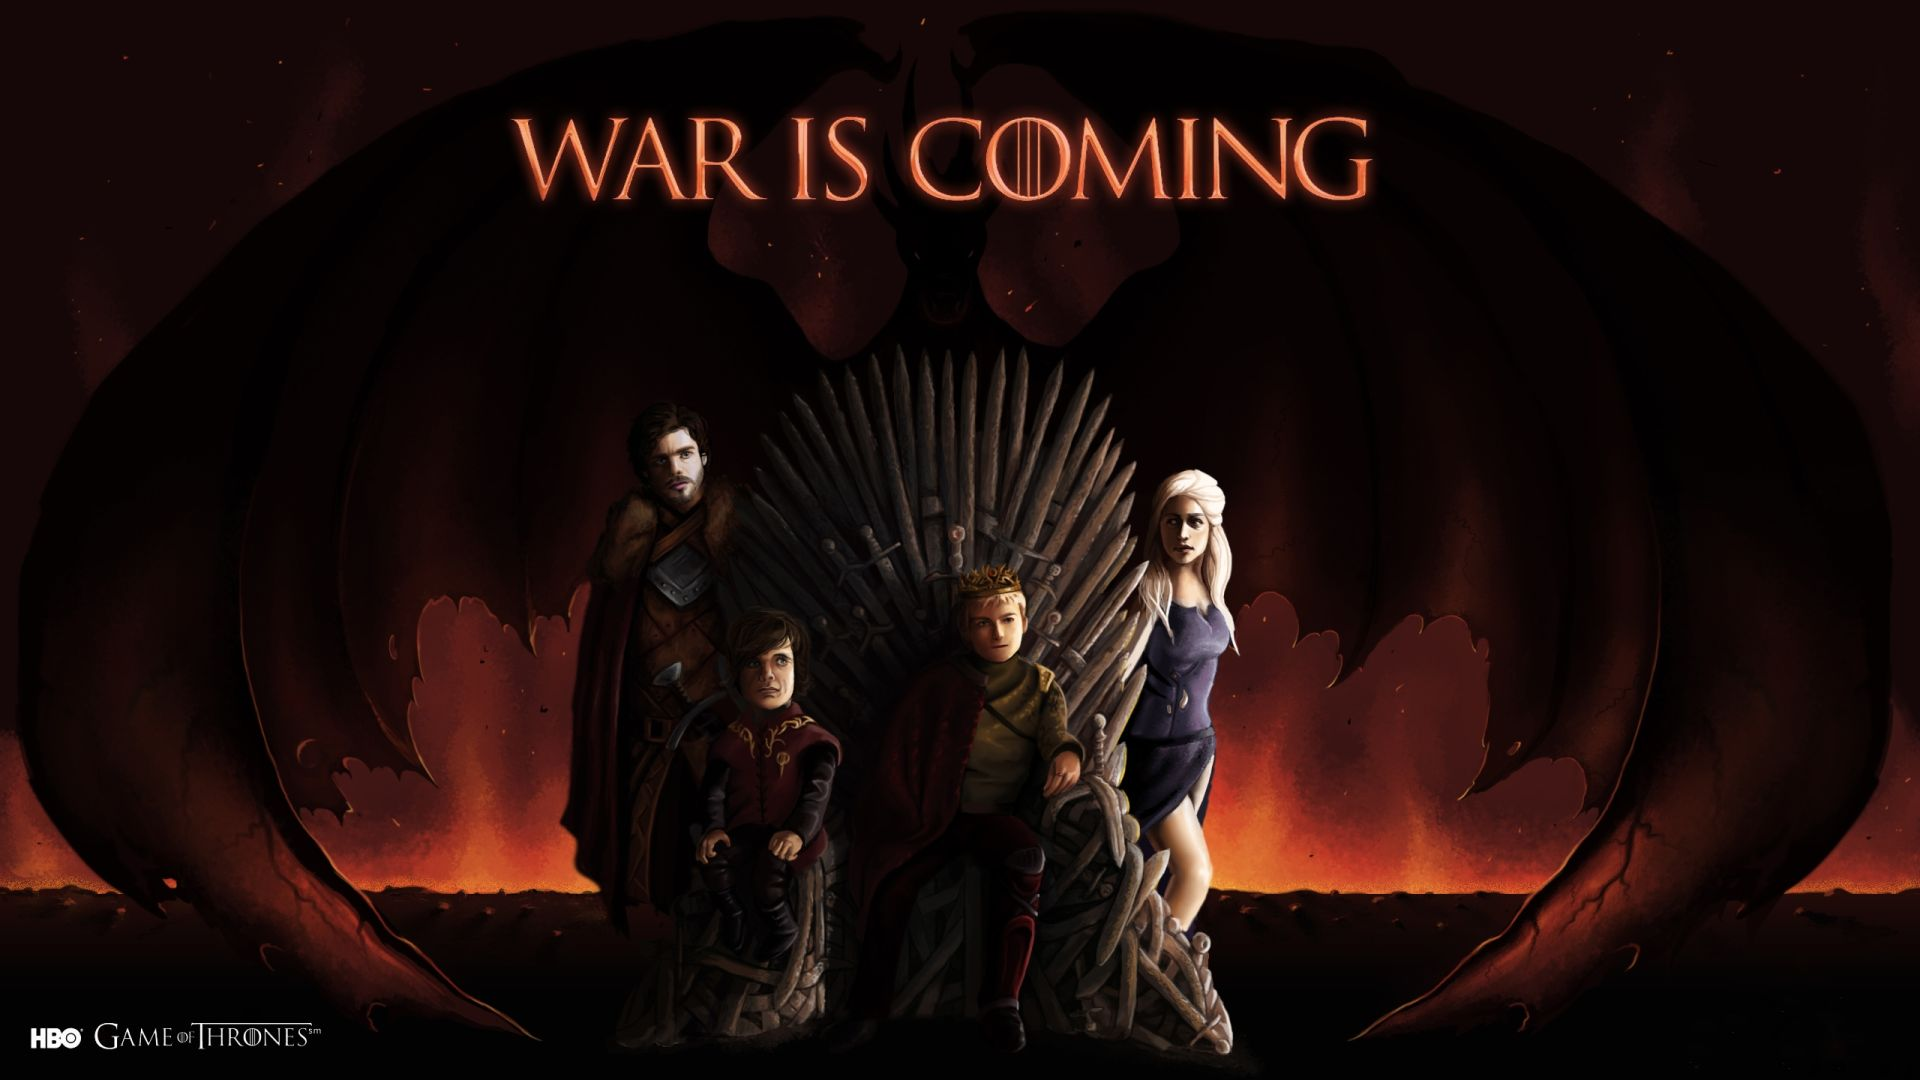 Game of Thrones War is Coming